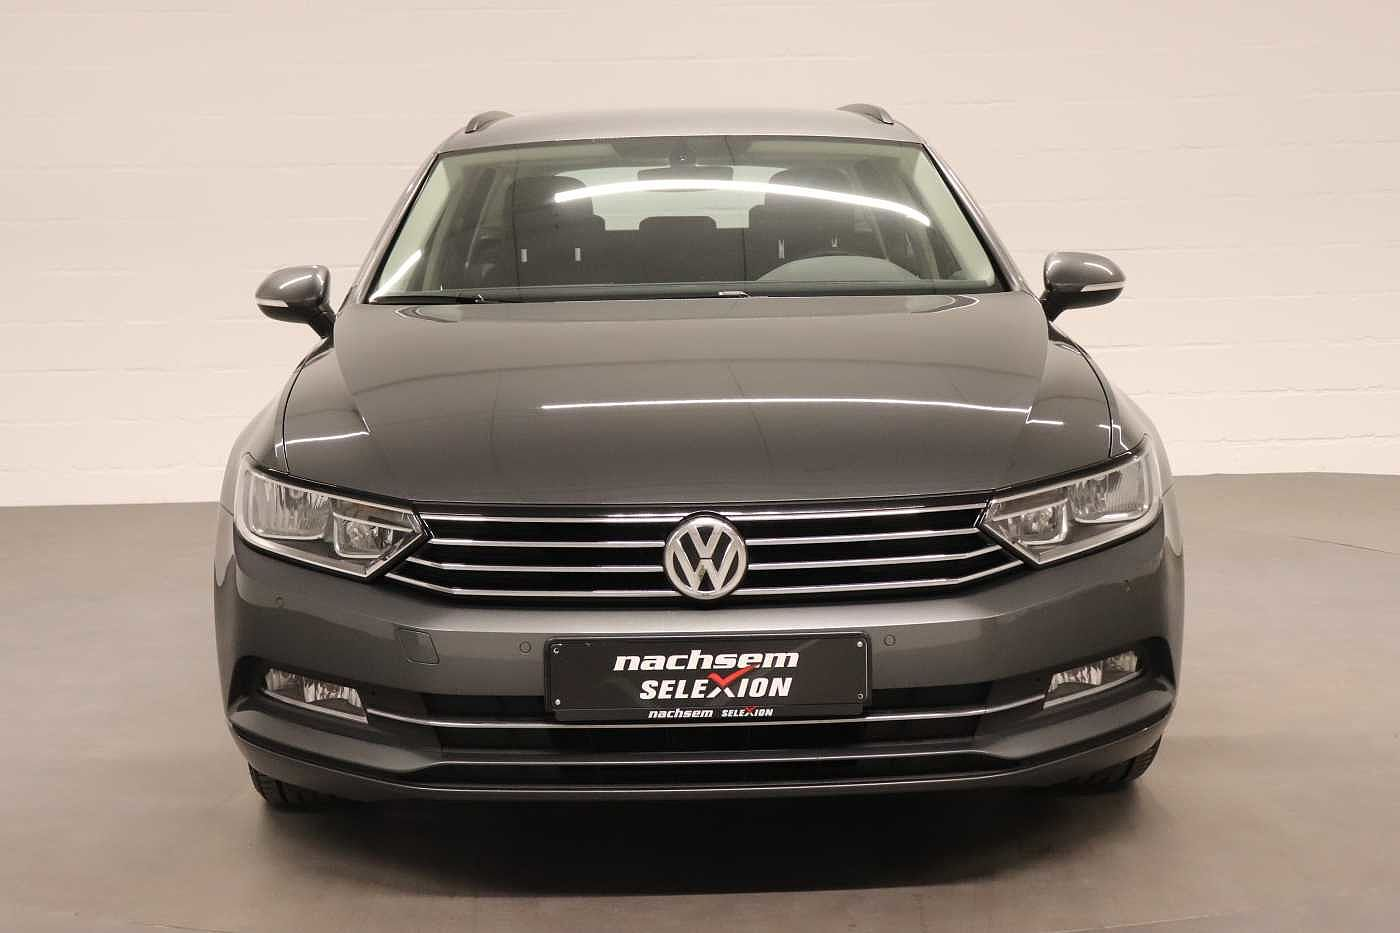 Volkswagen Passat 1.6Tdi - photo 5